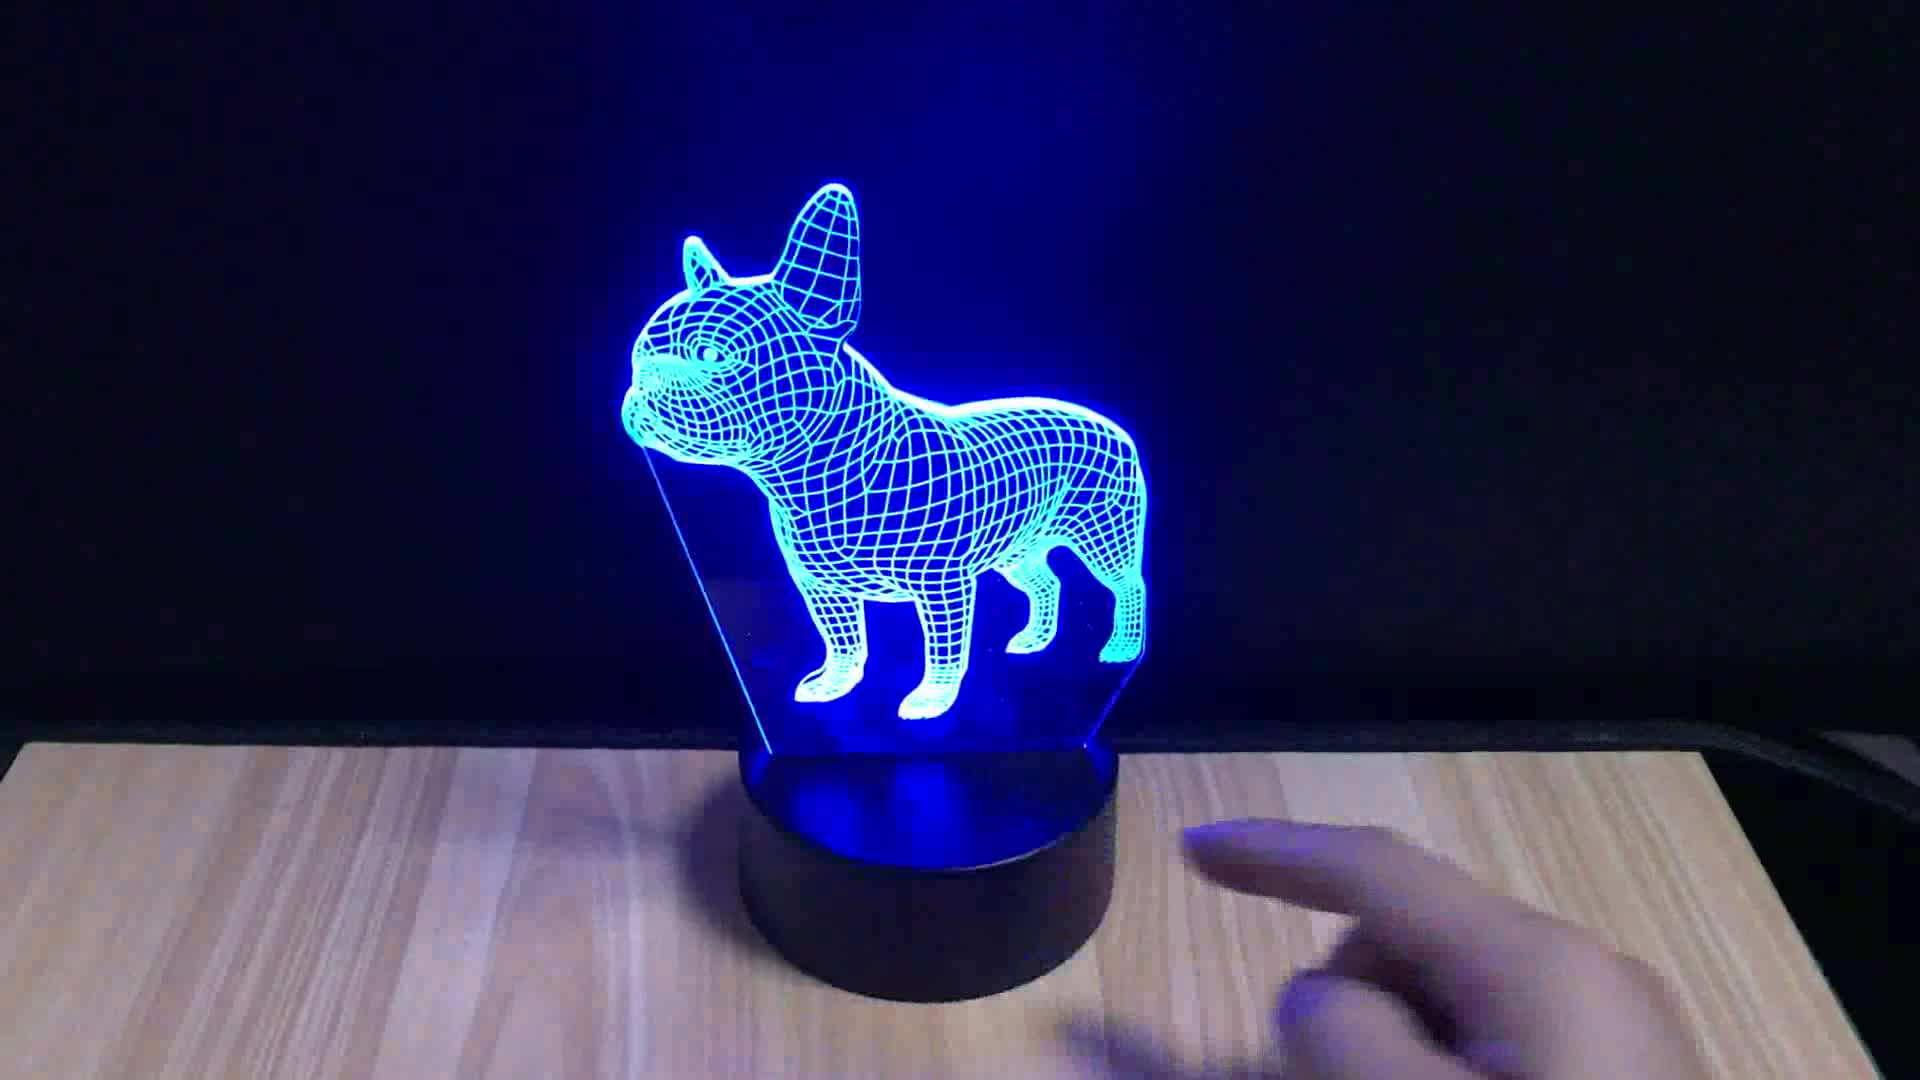 3D LED Night Light Lamps for Home Decoration 3D Optical Illusion 7 Colors Touch Table Desk Visual Lamp